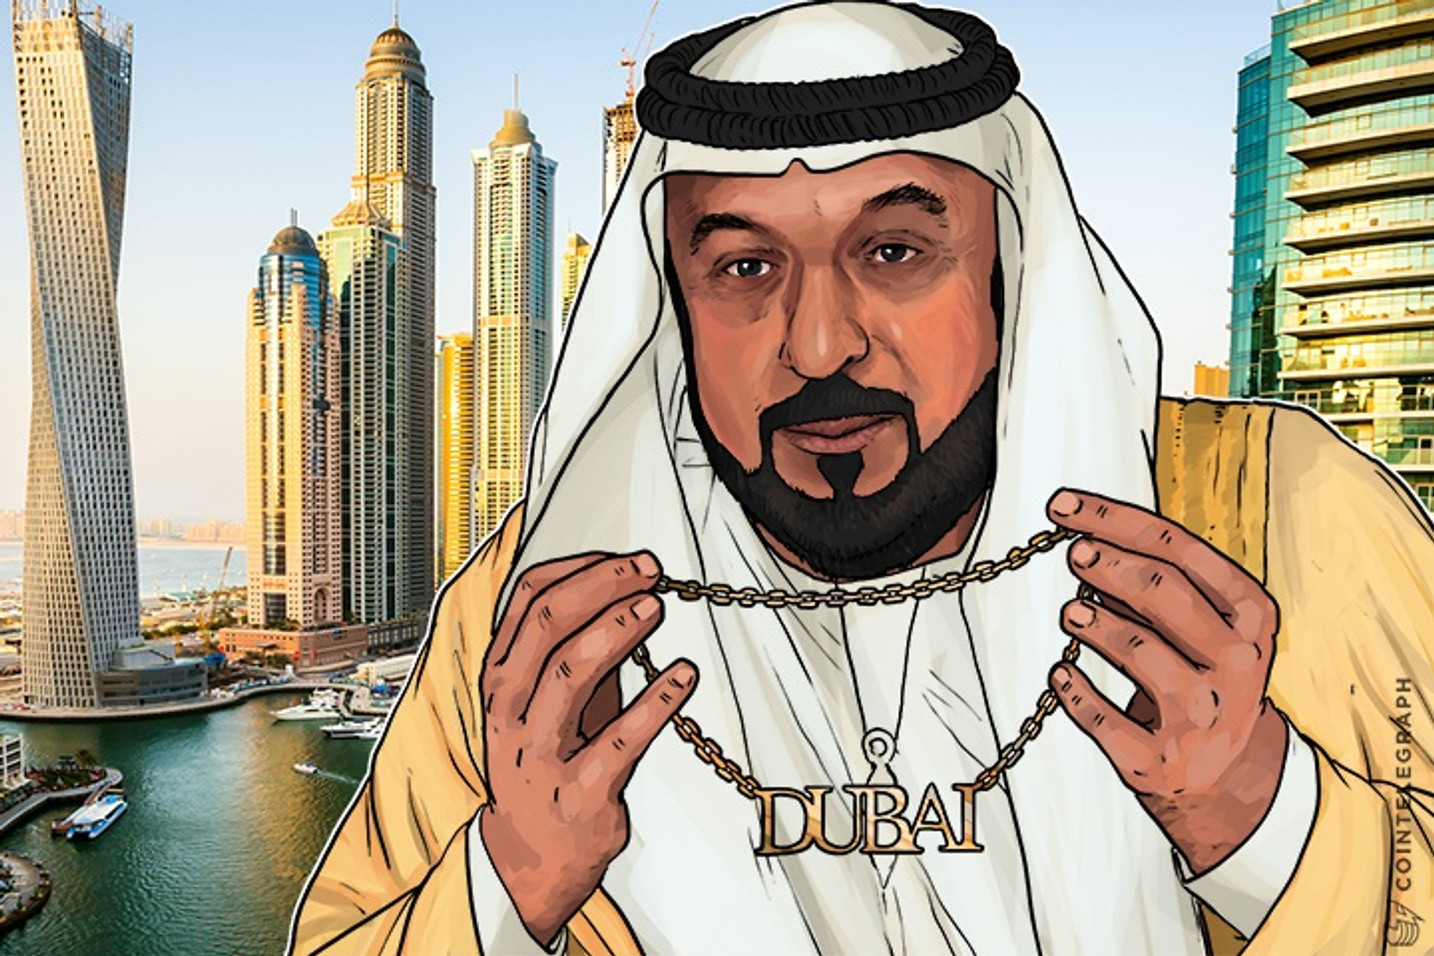 Dubai Promotes Blockchain Use In Middle East, Calls for Developing Legislation, Apps